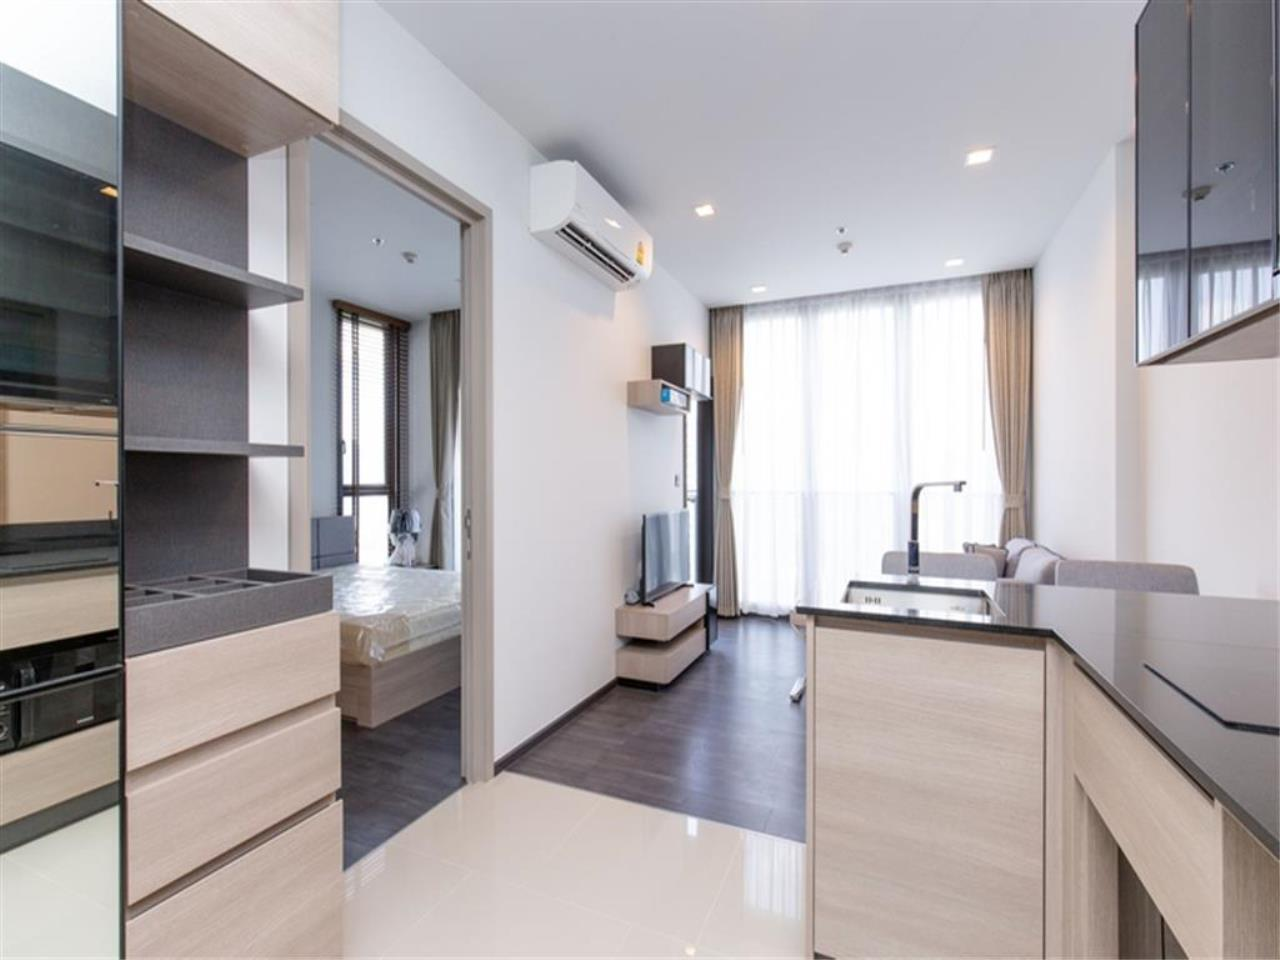 Plus Property Agency's Rent : CD188861 THE LINE ASOKE-RATCHADA Condominium New Petchburi - Rama 9 Bangkok 13